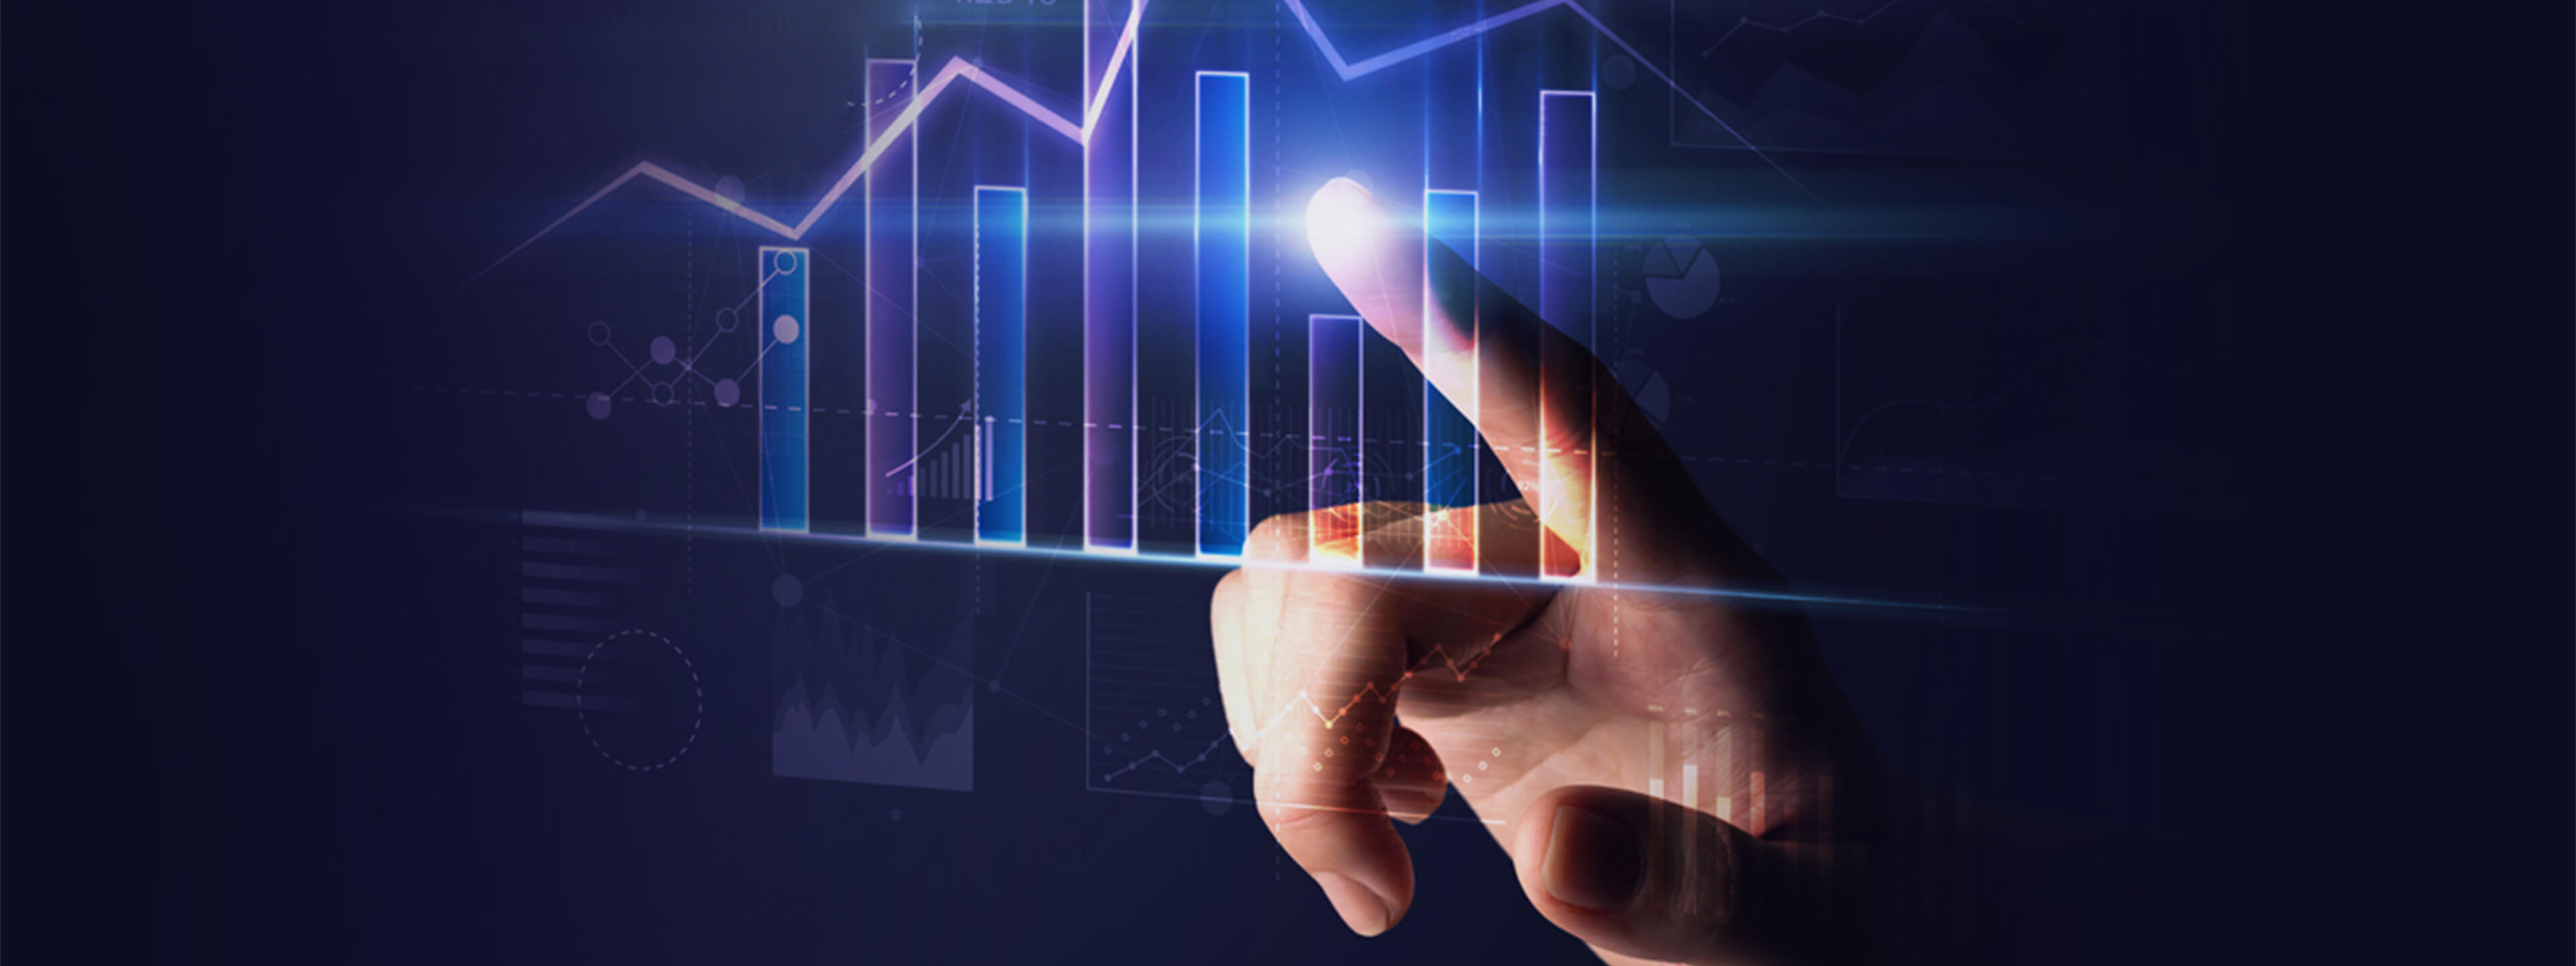 Automatic-forecasting-does-it-help-to-improve-planning